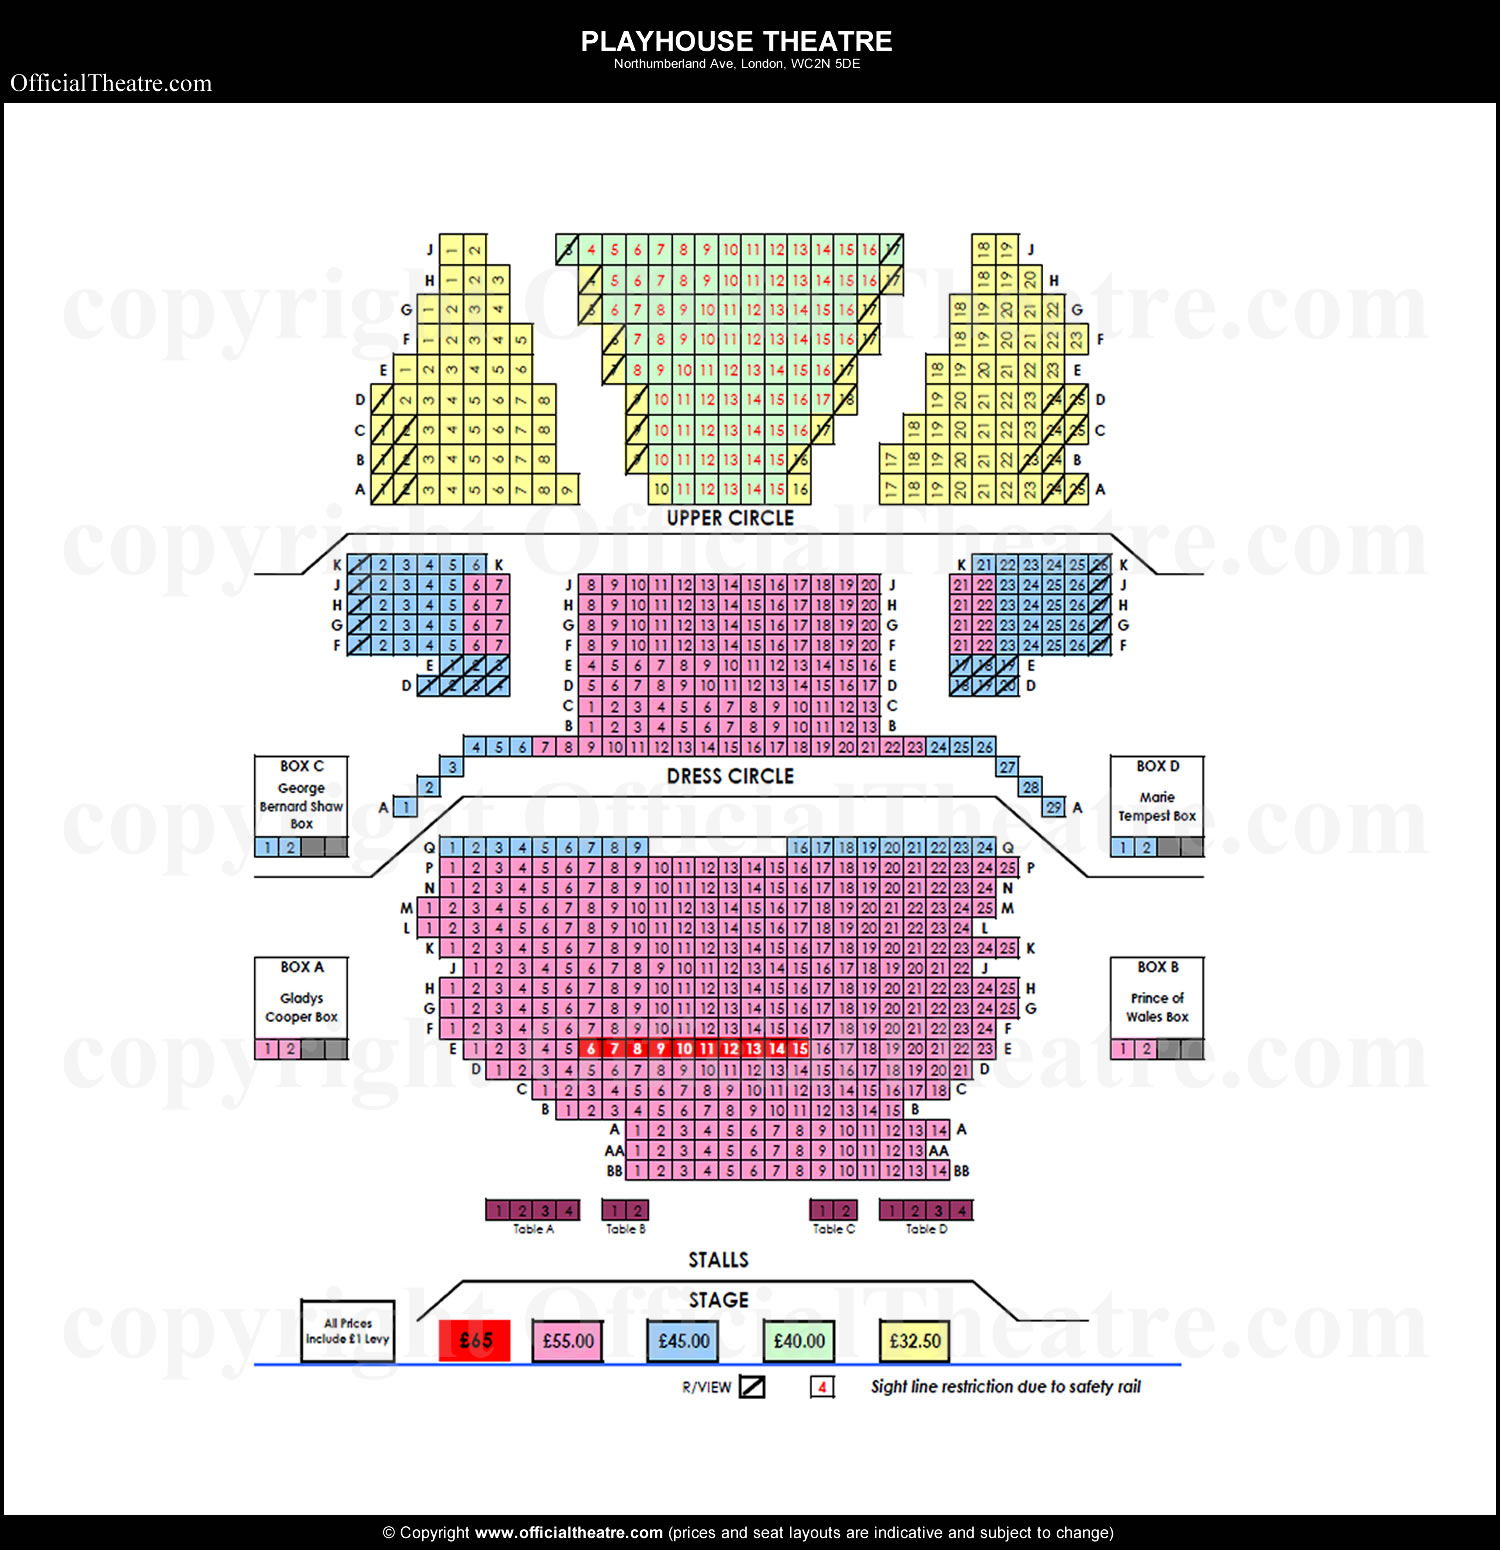 Playhouse Theatre Seating Price